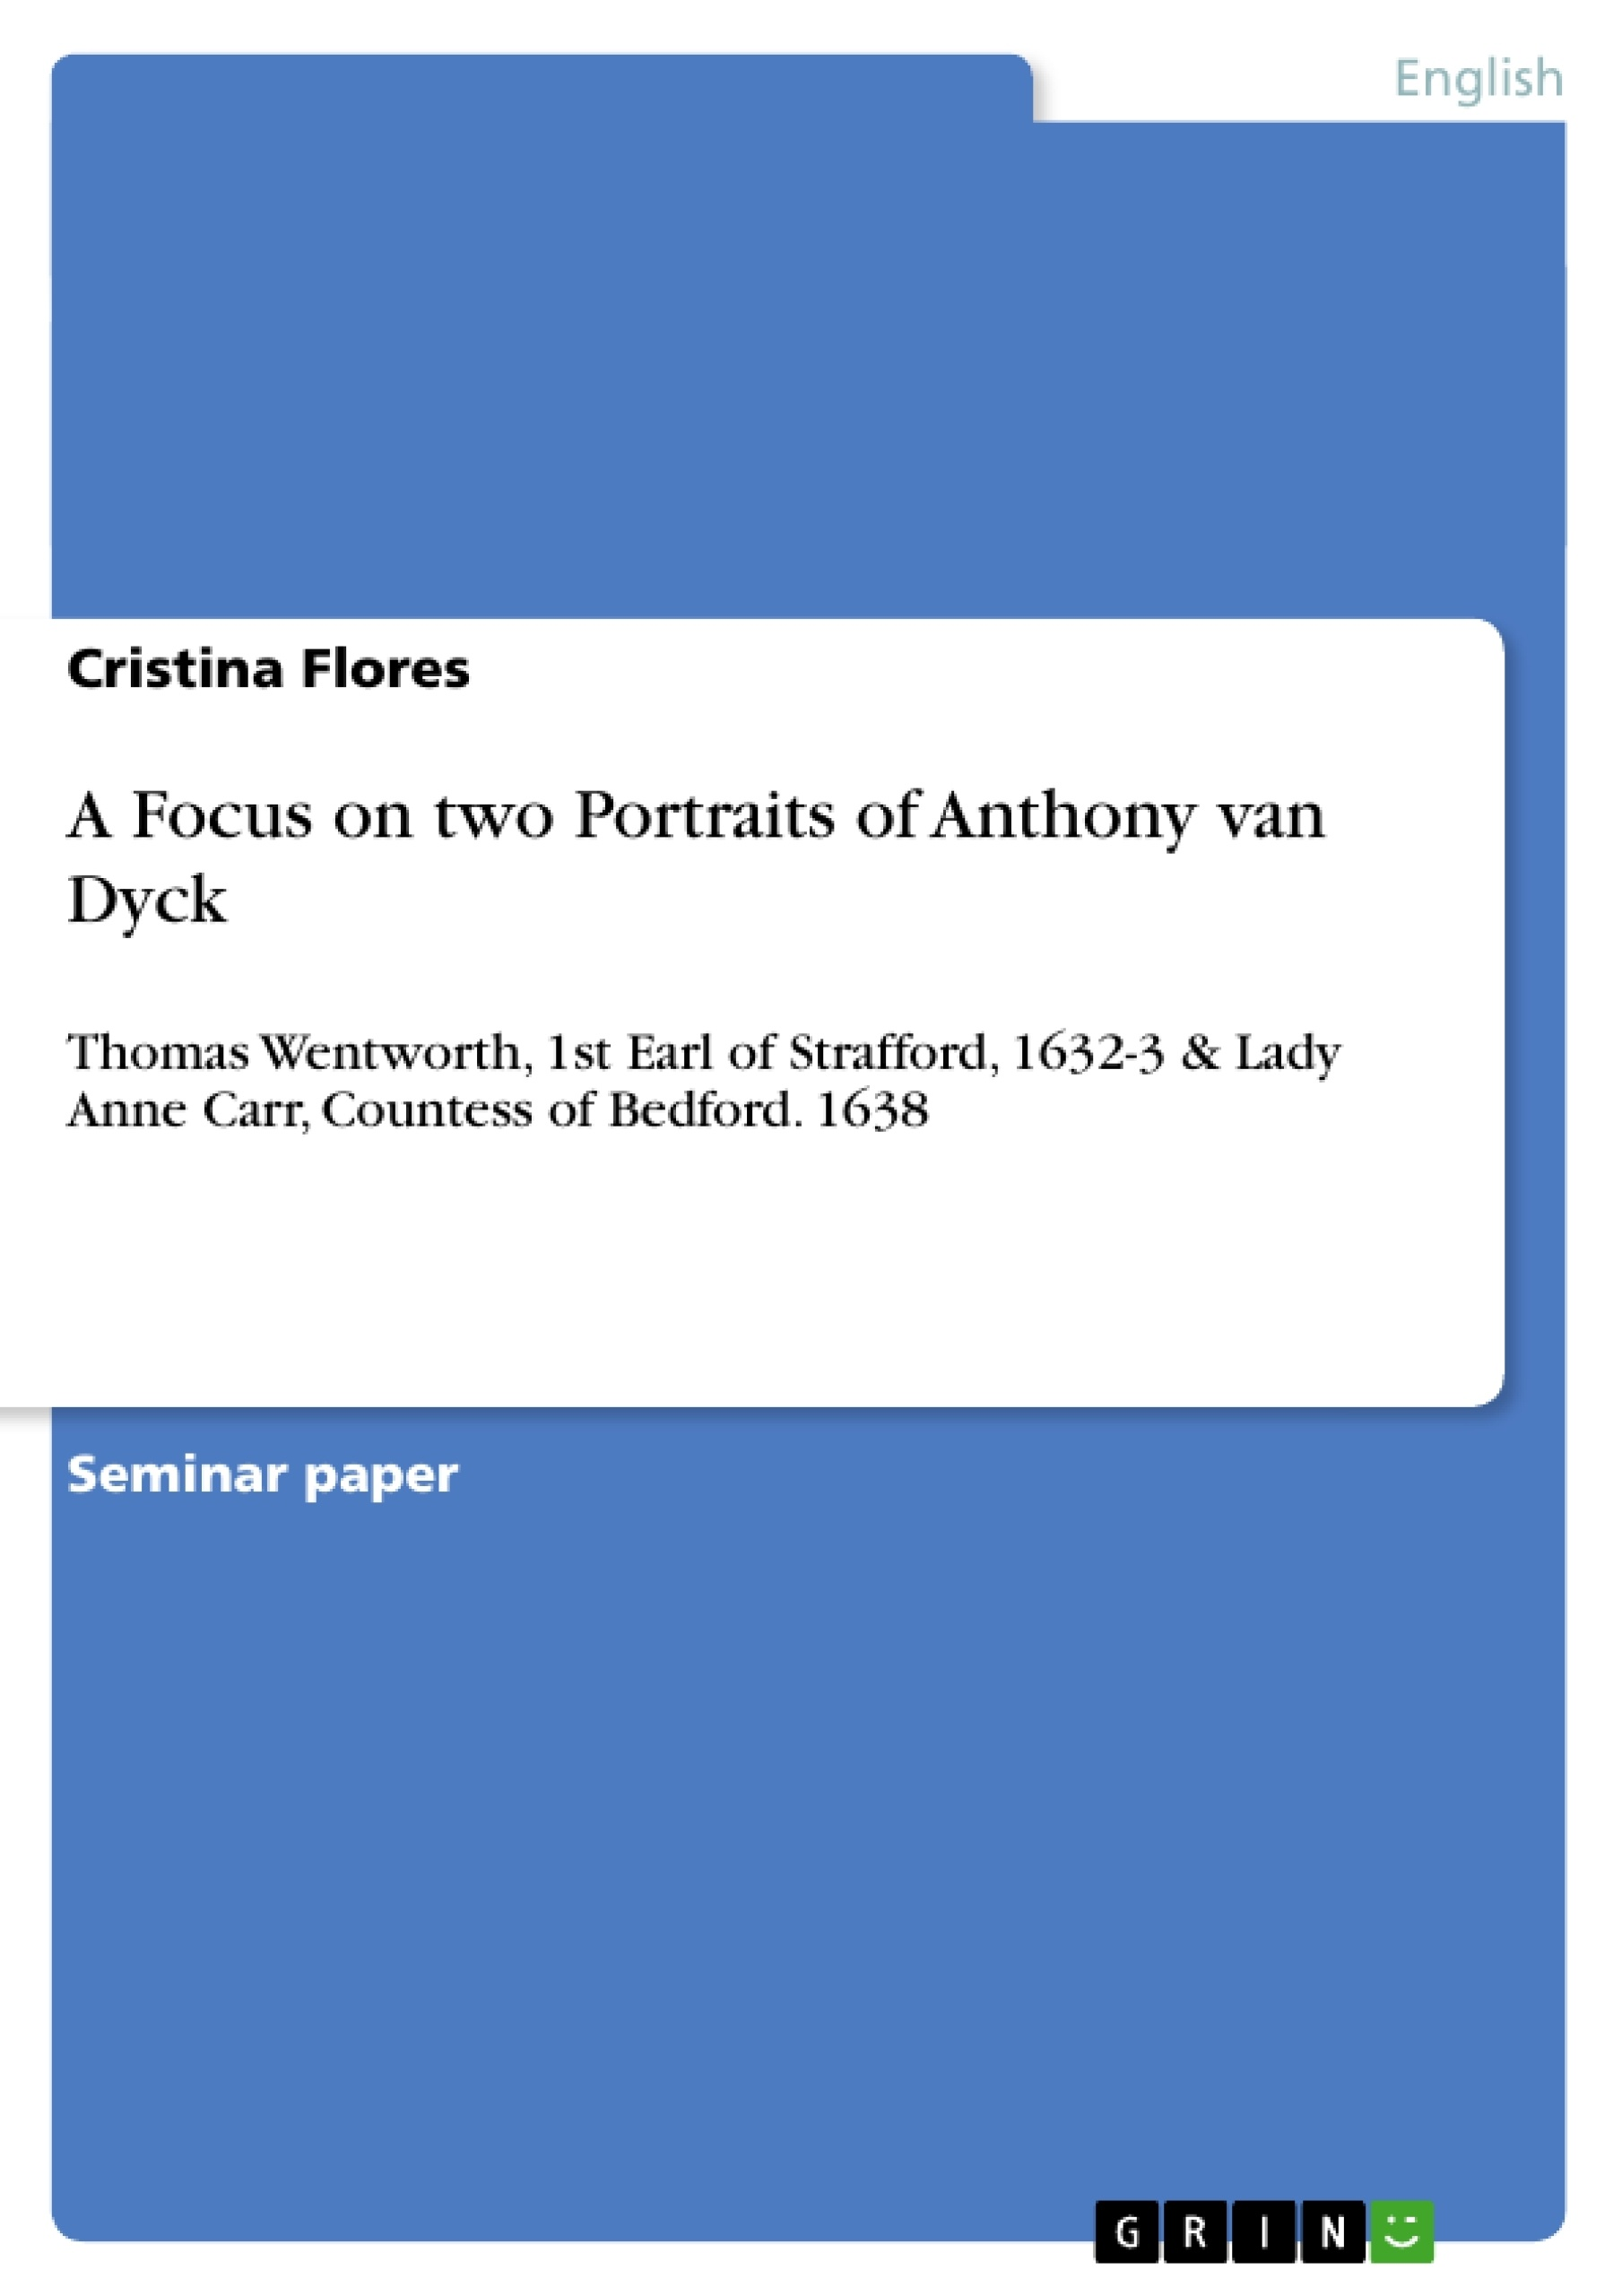 Title: A Focus on two Portraits of Anthony van Dyck